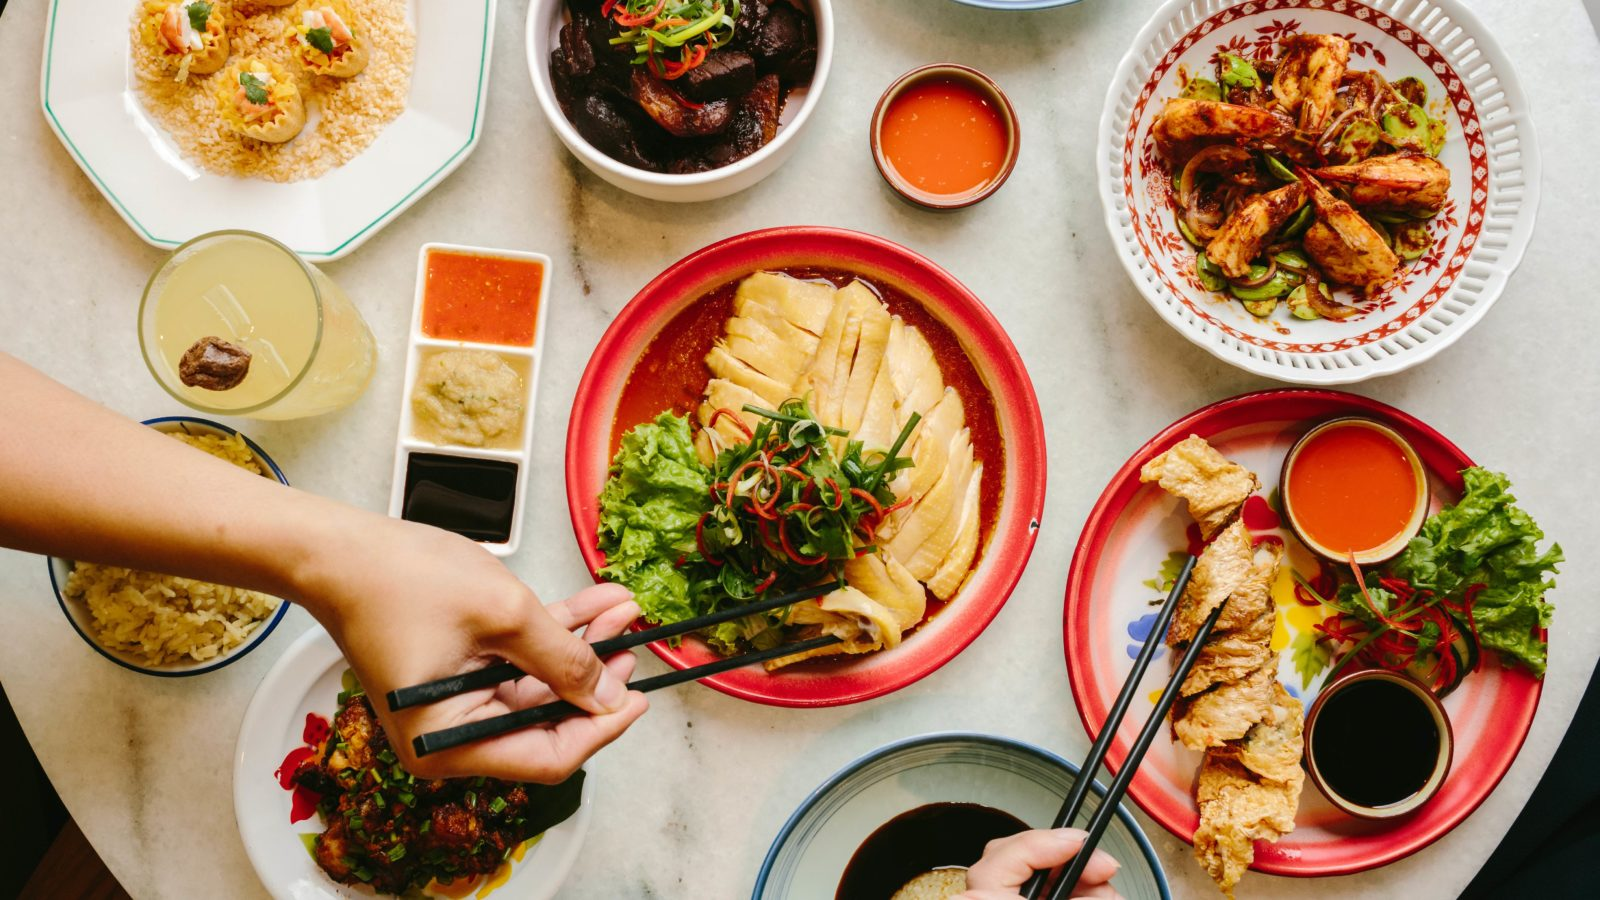 Best Bites: 6 dishes in Hong Kong we loved this week